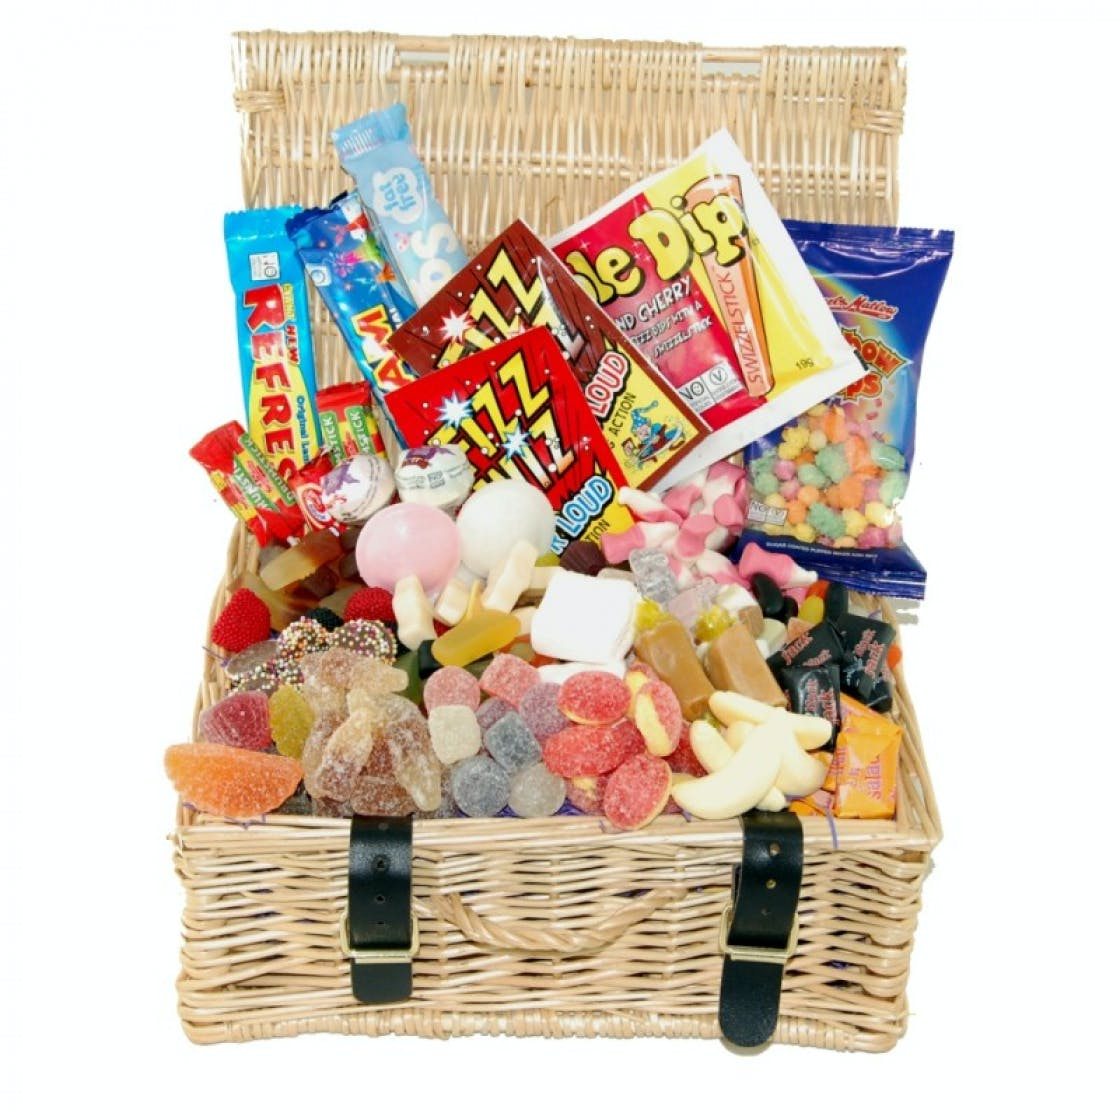 Christmas Hampers - The 10 Best